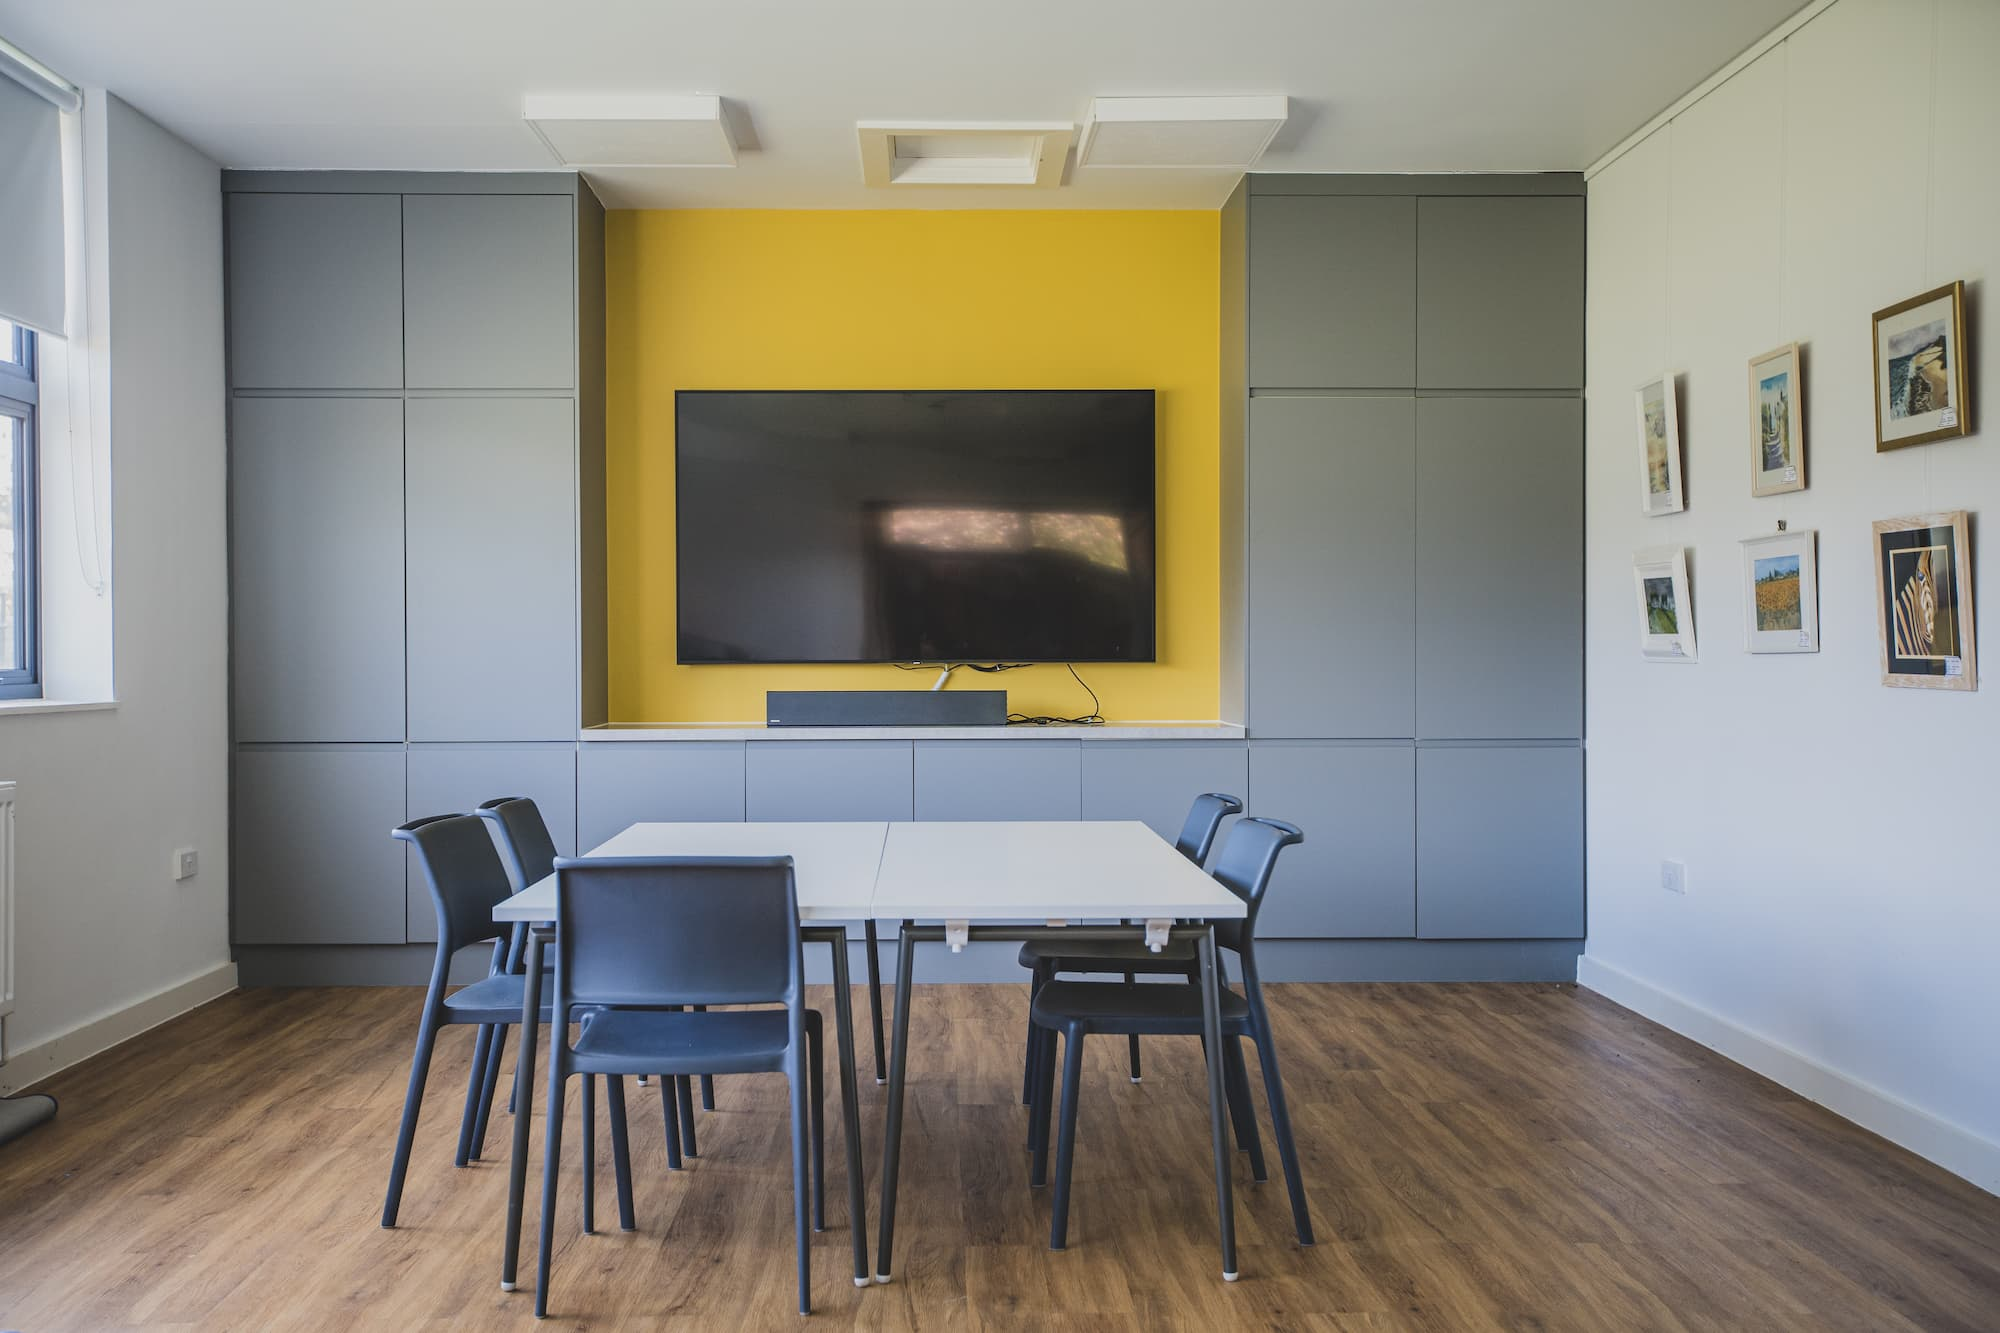 A meeting room with a large, wall mounted monitor and a table with room for eight chairs.